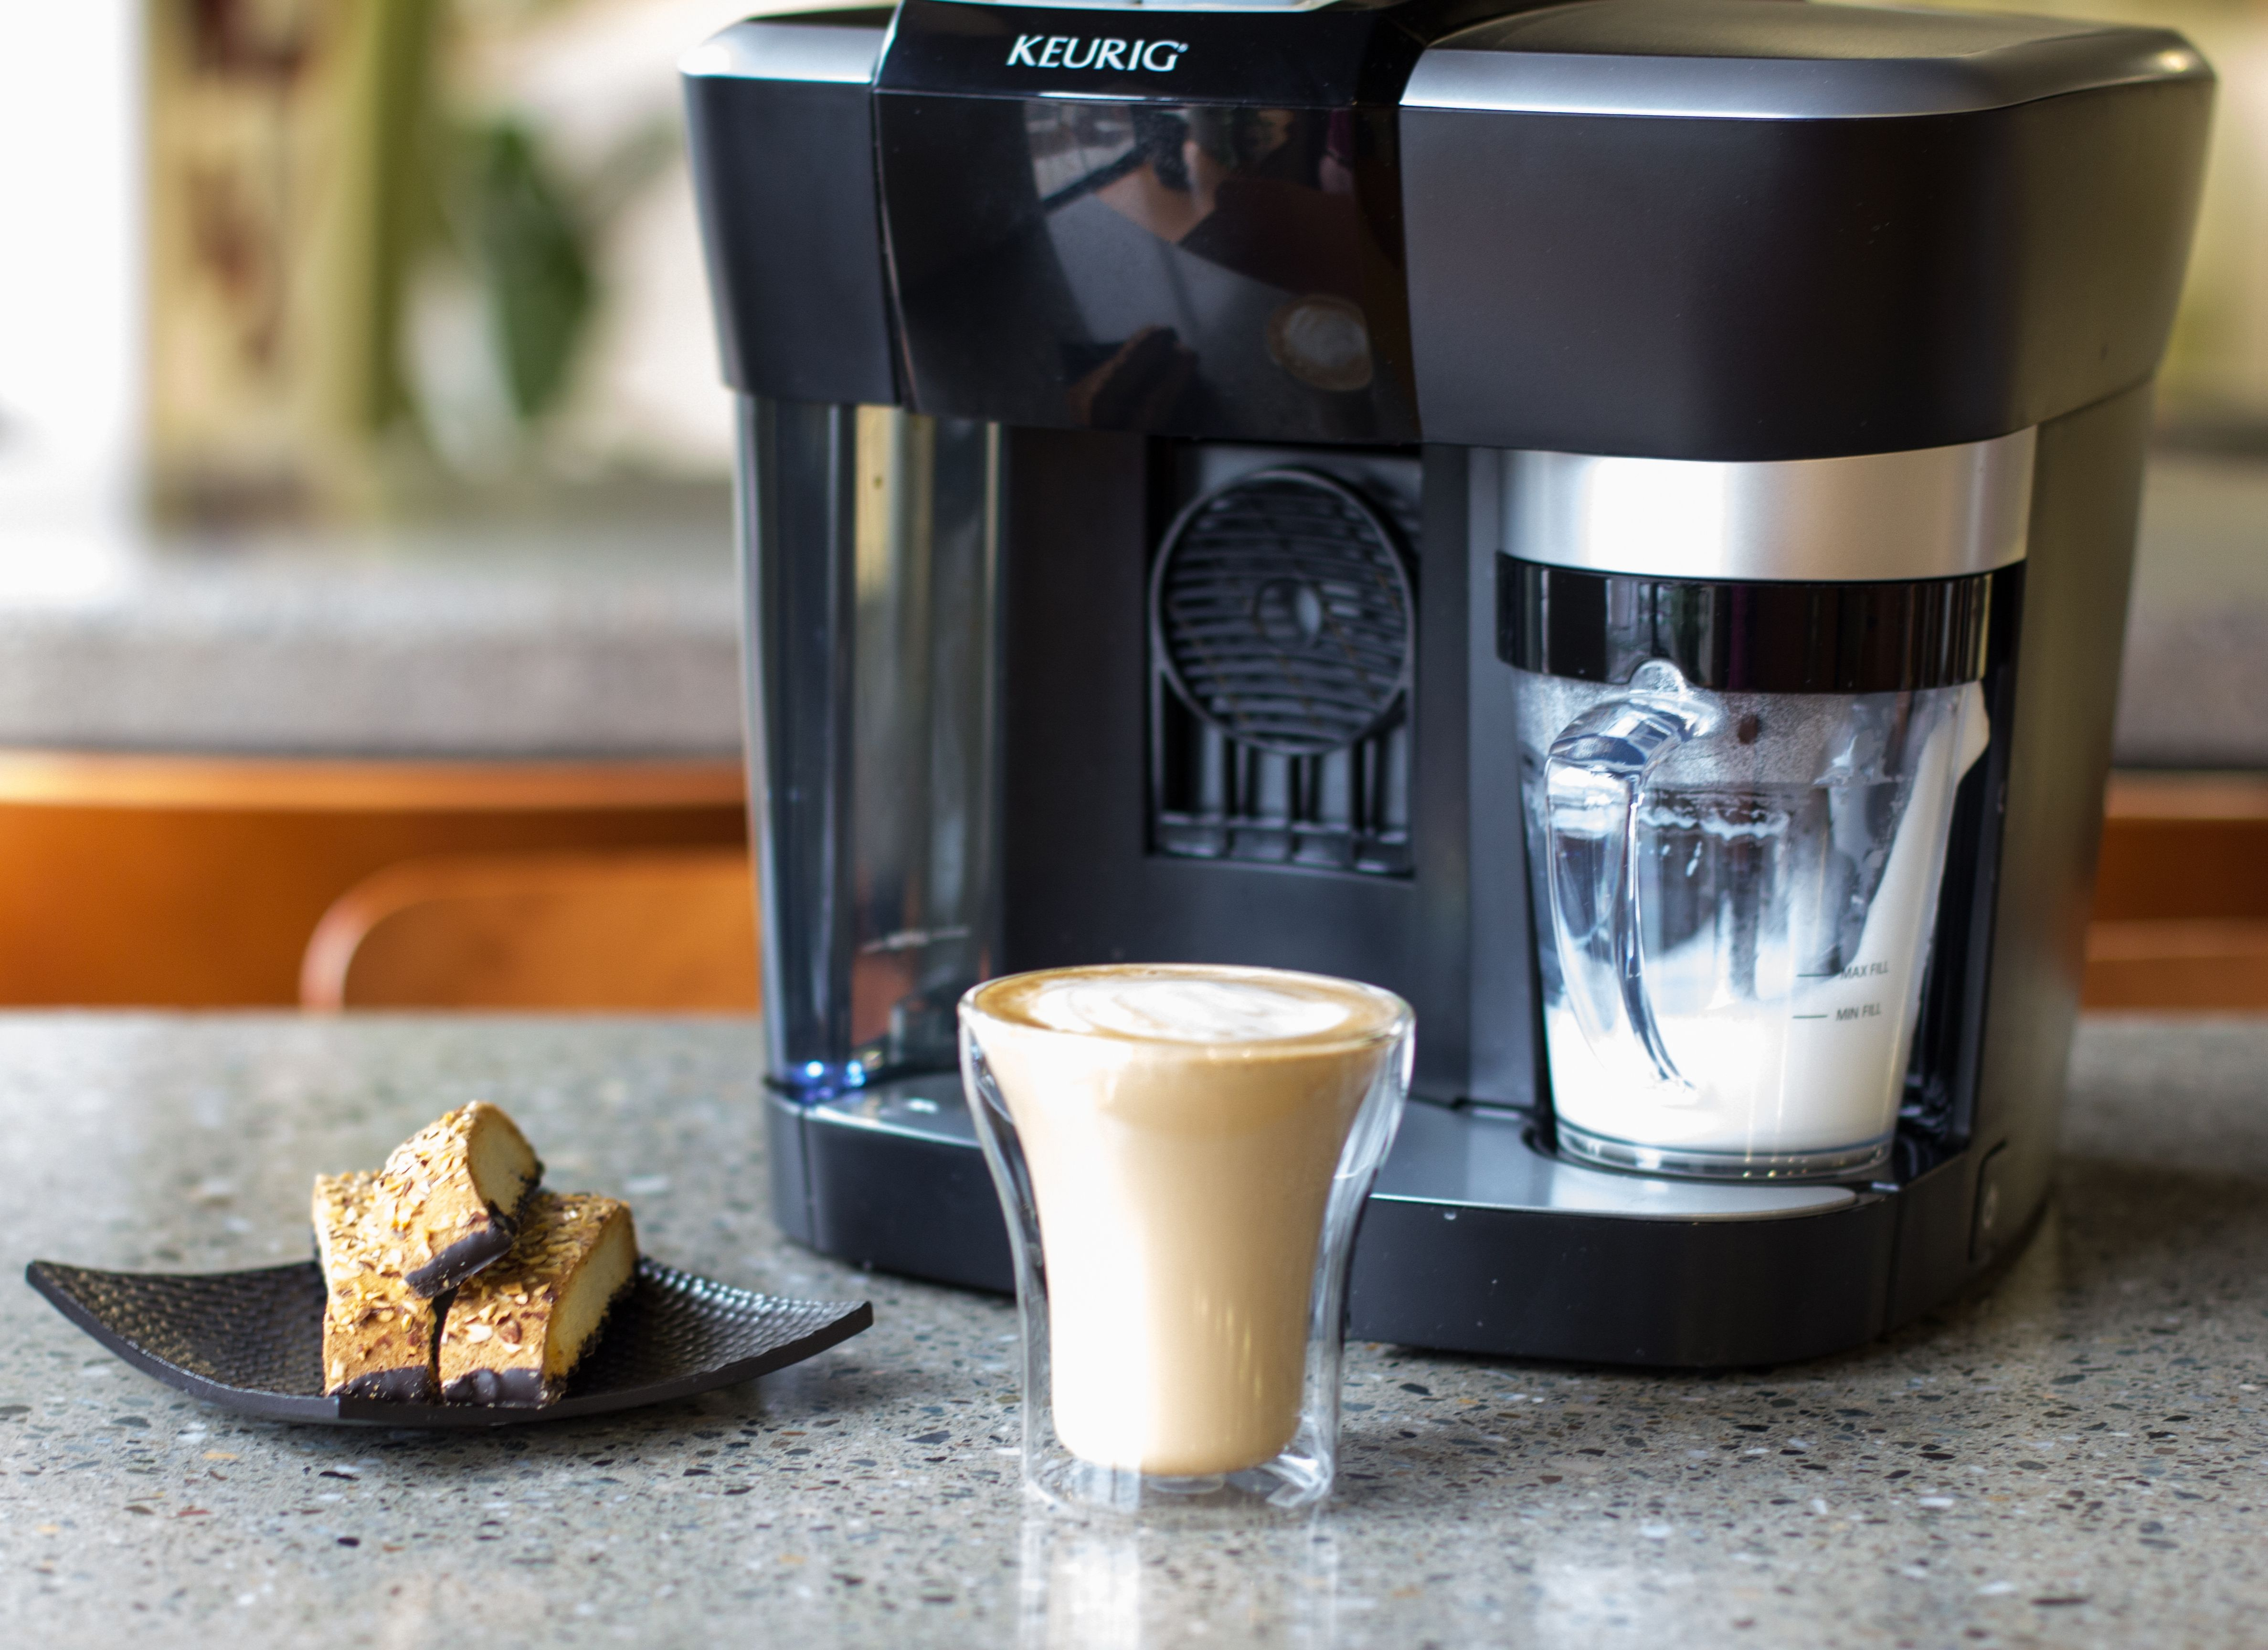 Make the most perfect cup of Keurig Brewed cappuccino and latte with our Rivo Cappuccino & Latte System and Lavazza's Espresso Intenso, Espresso Classico, Espresso Decaf, and Espresso Delicato Rivo pods!